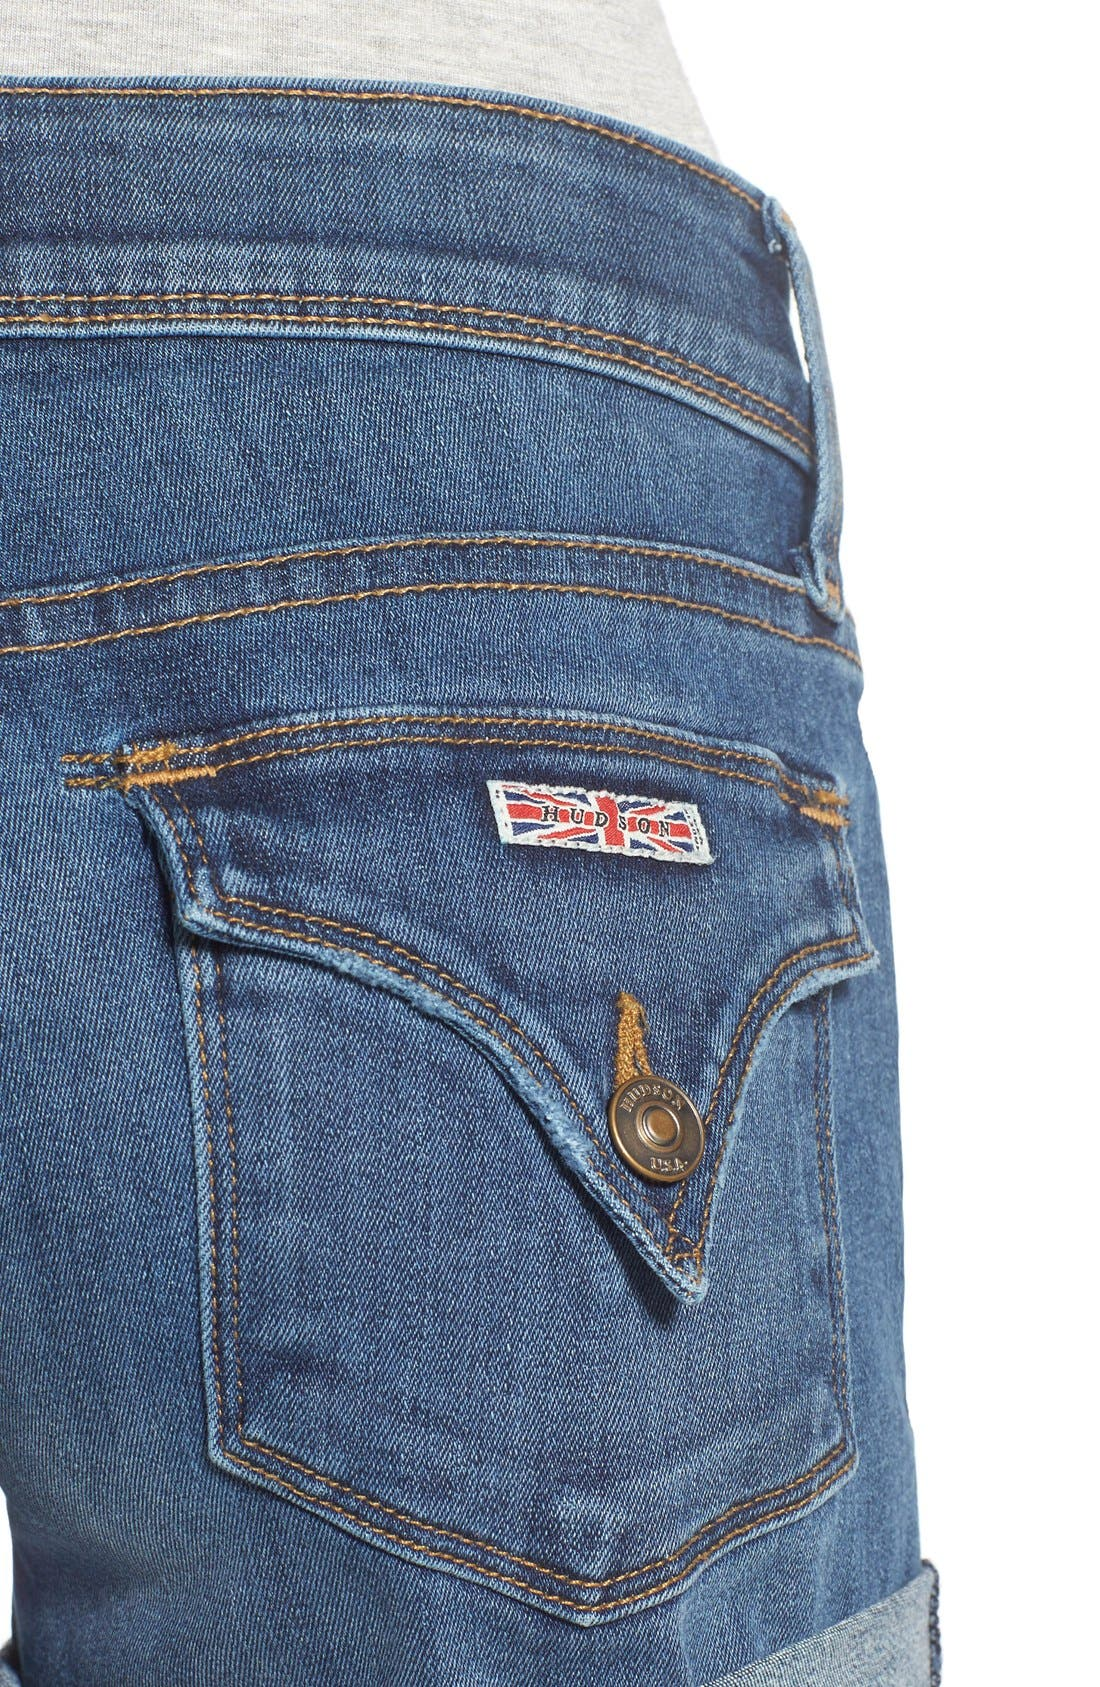 'Croxley' Cuffed Denim Shorts,                             Alternate thumbnail 19, color,